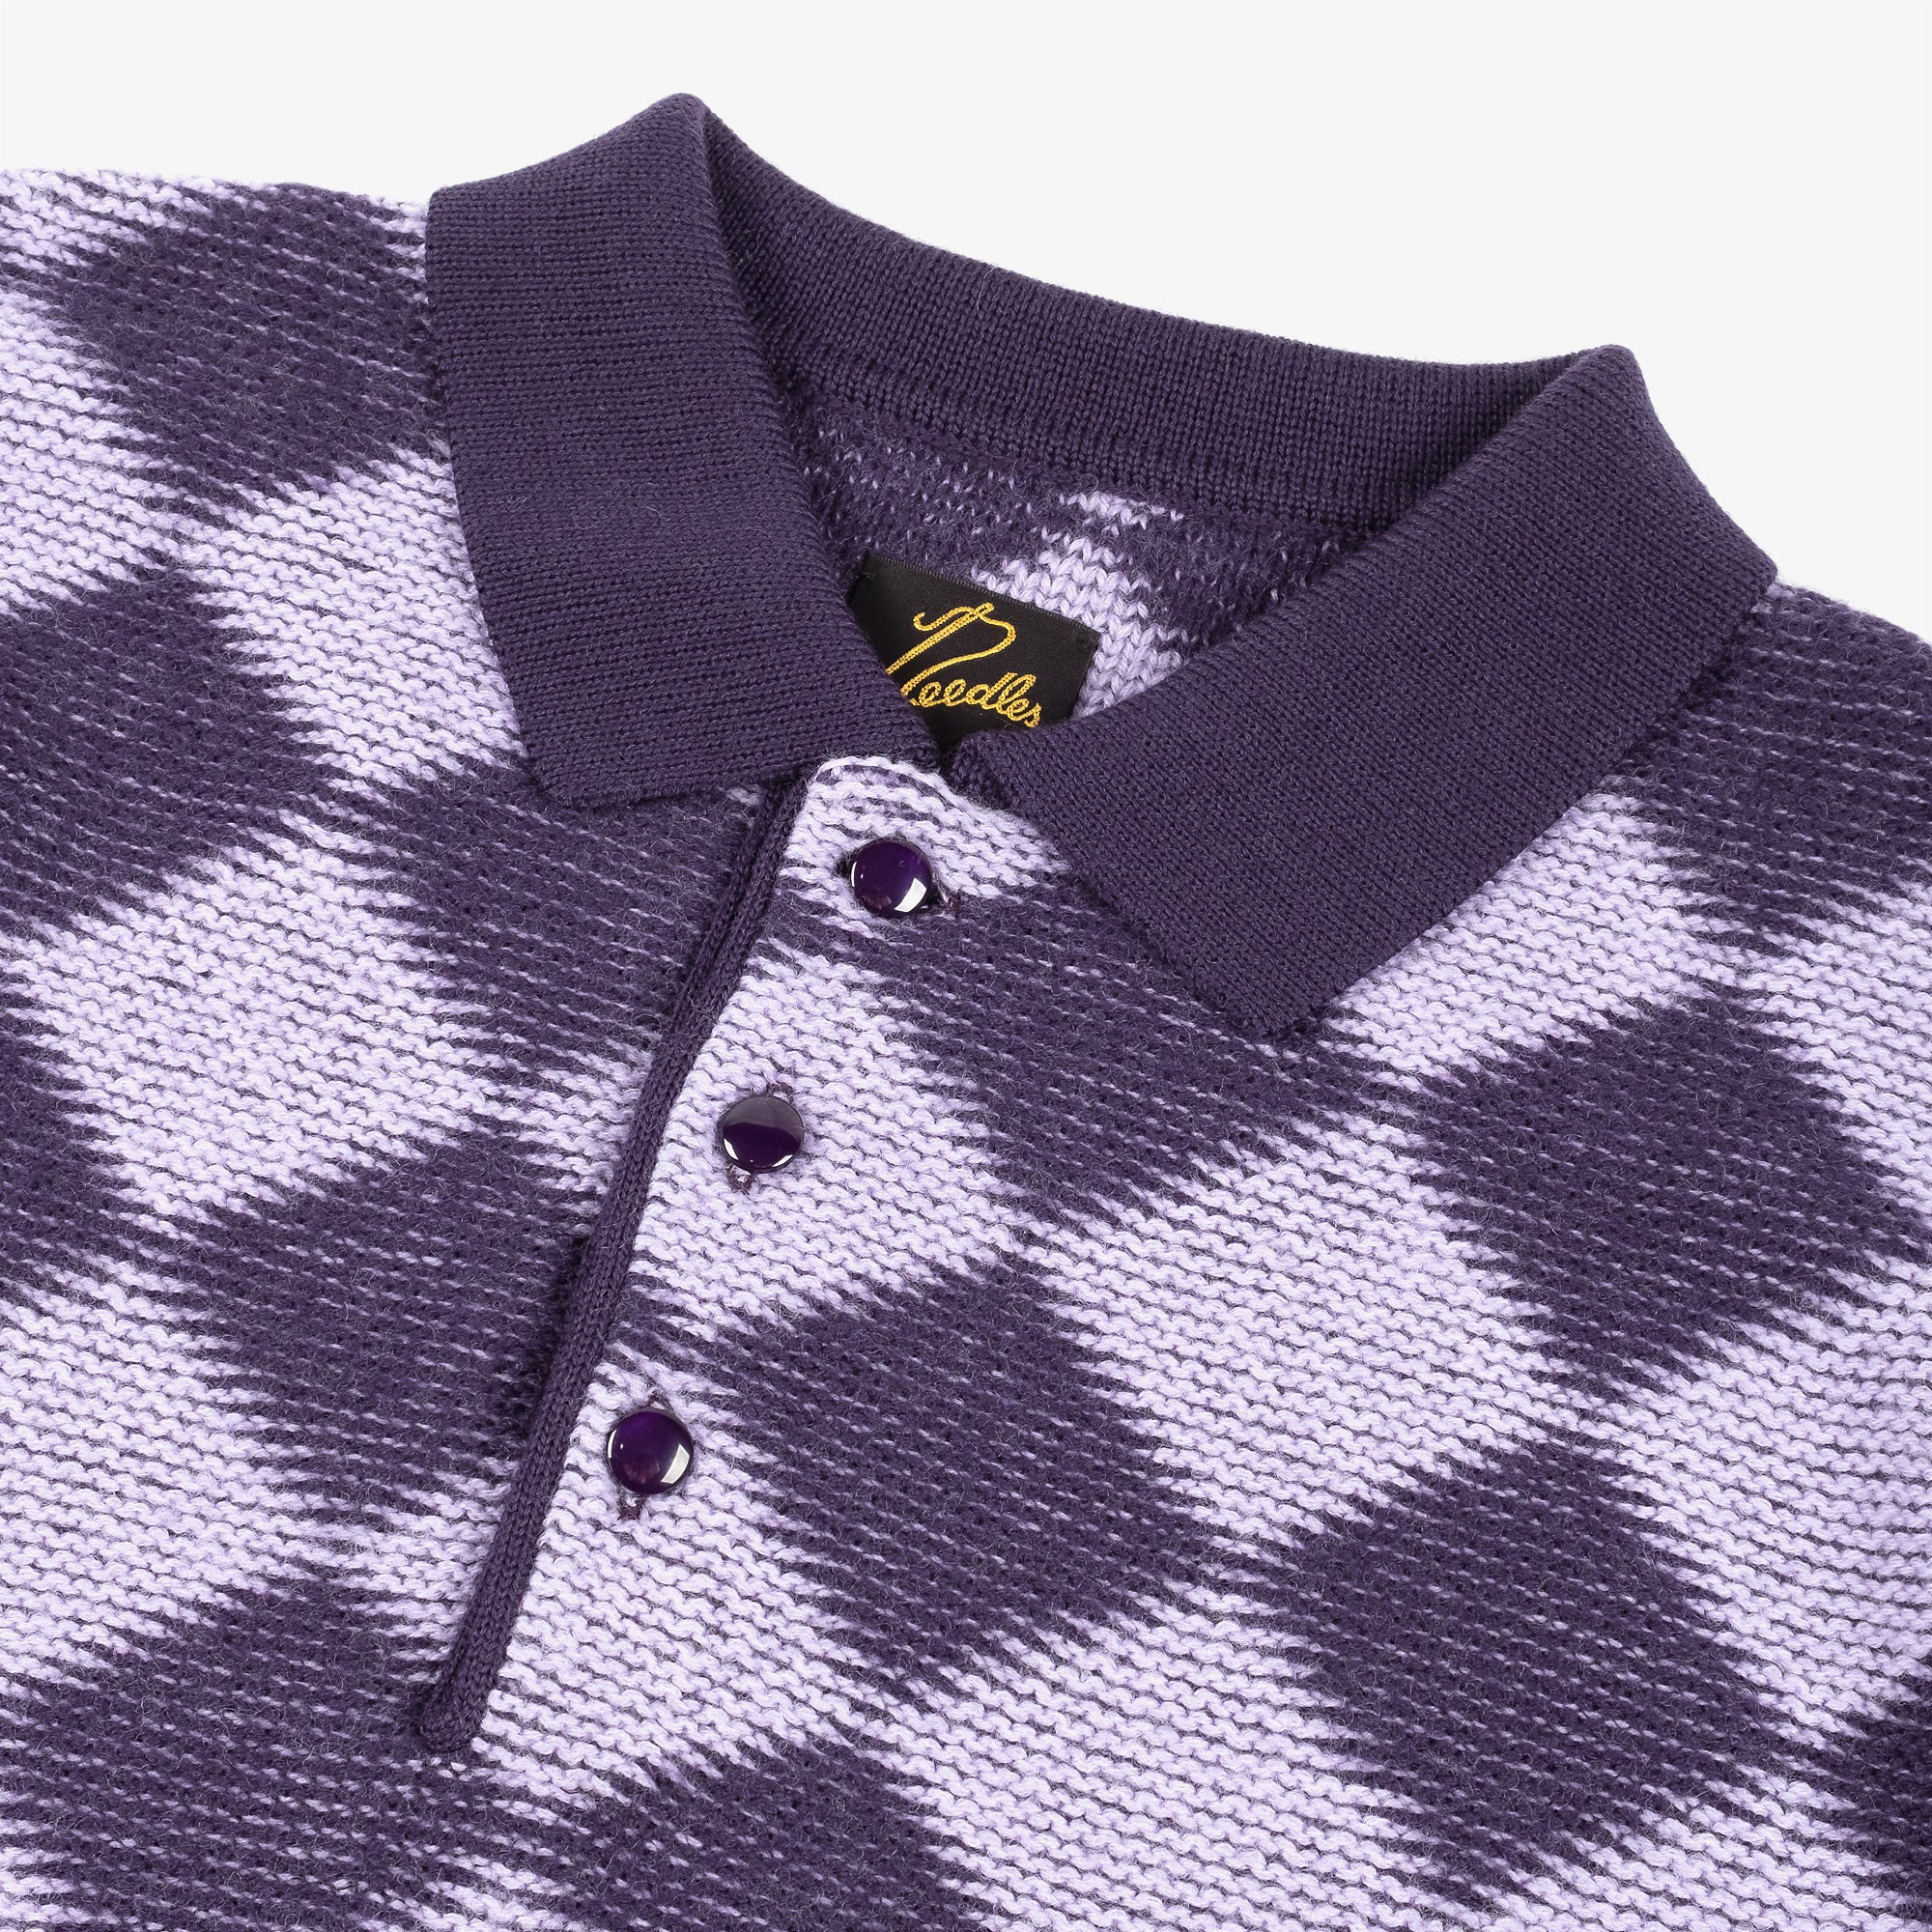 Needles M' Polo Sweater Checkered - Purple 2